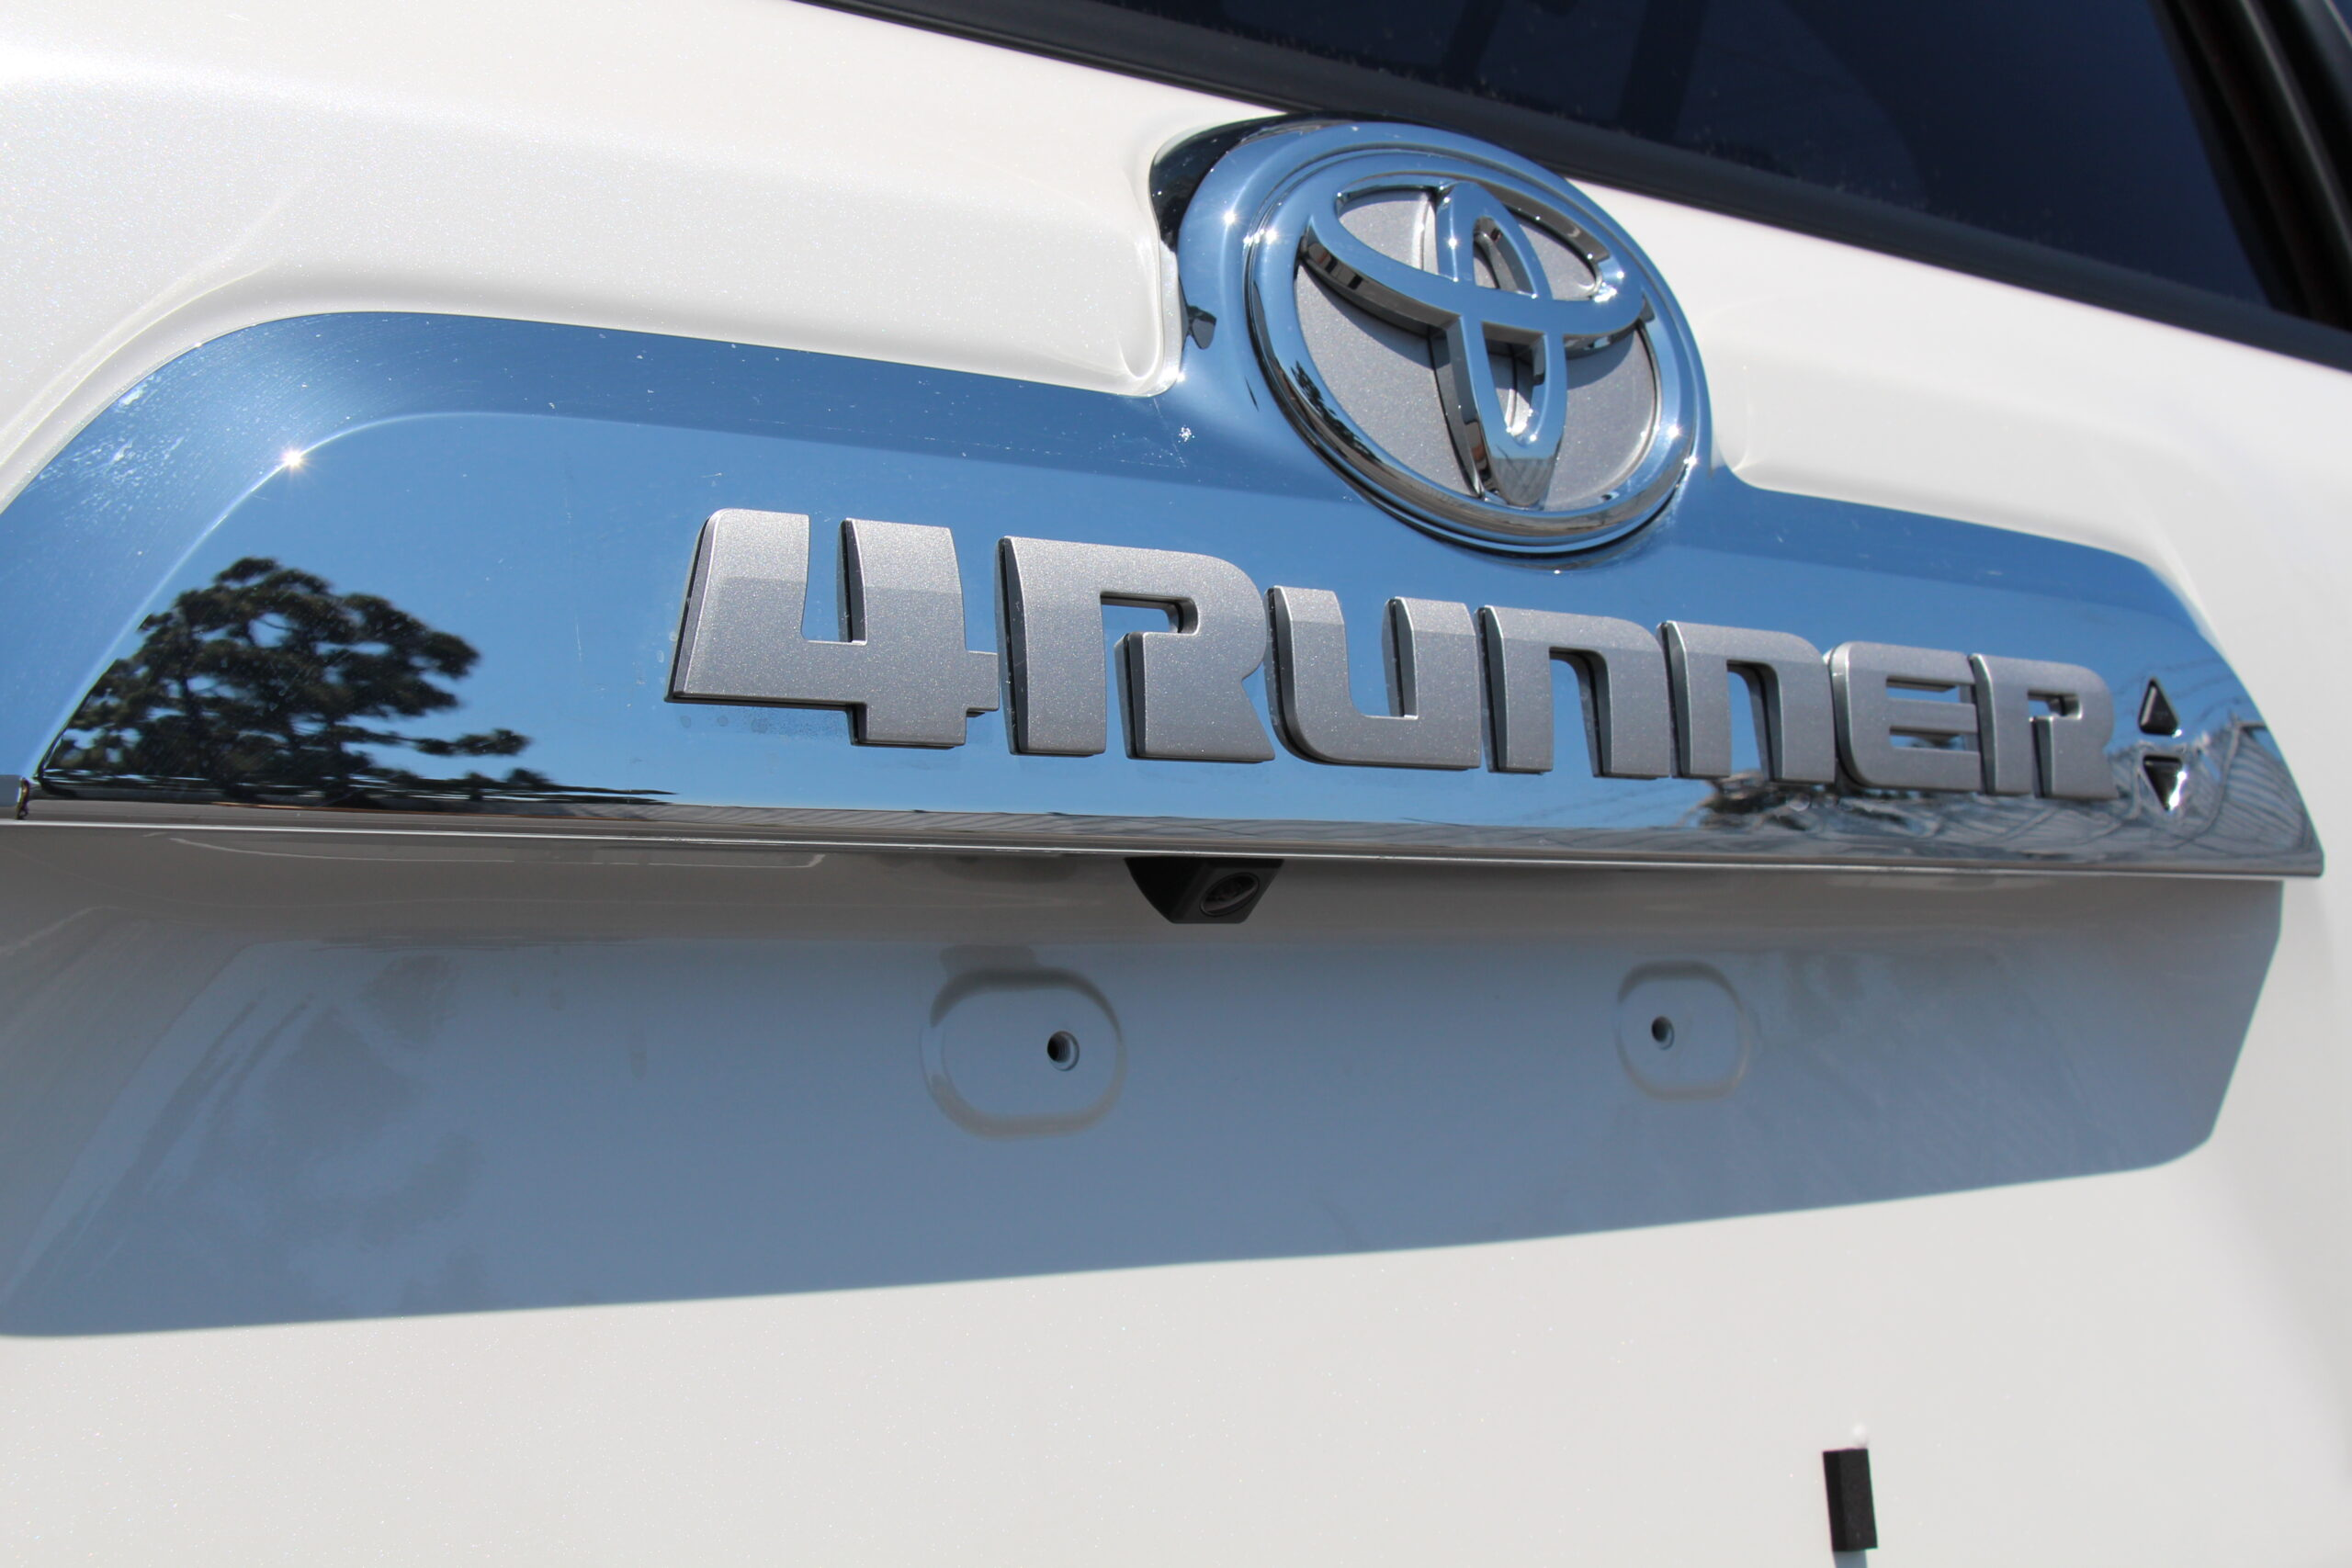 New 2014 4Runner Features Rugged Exterior Design To Match Its Authentic Off Road Heritage